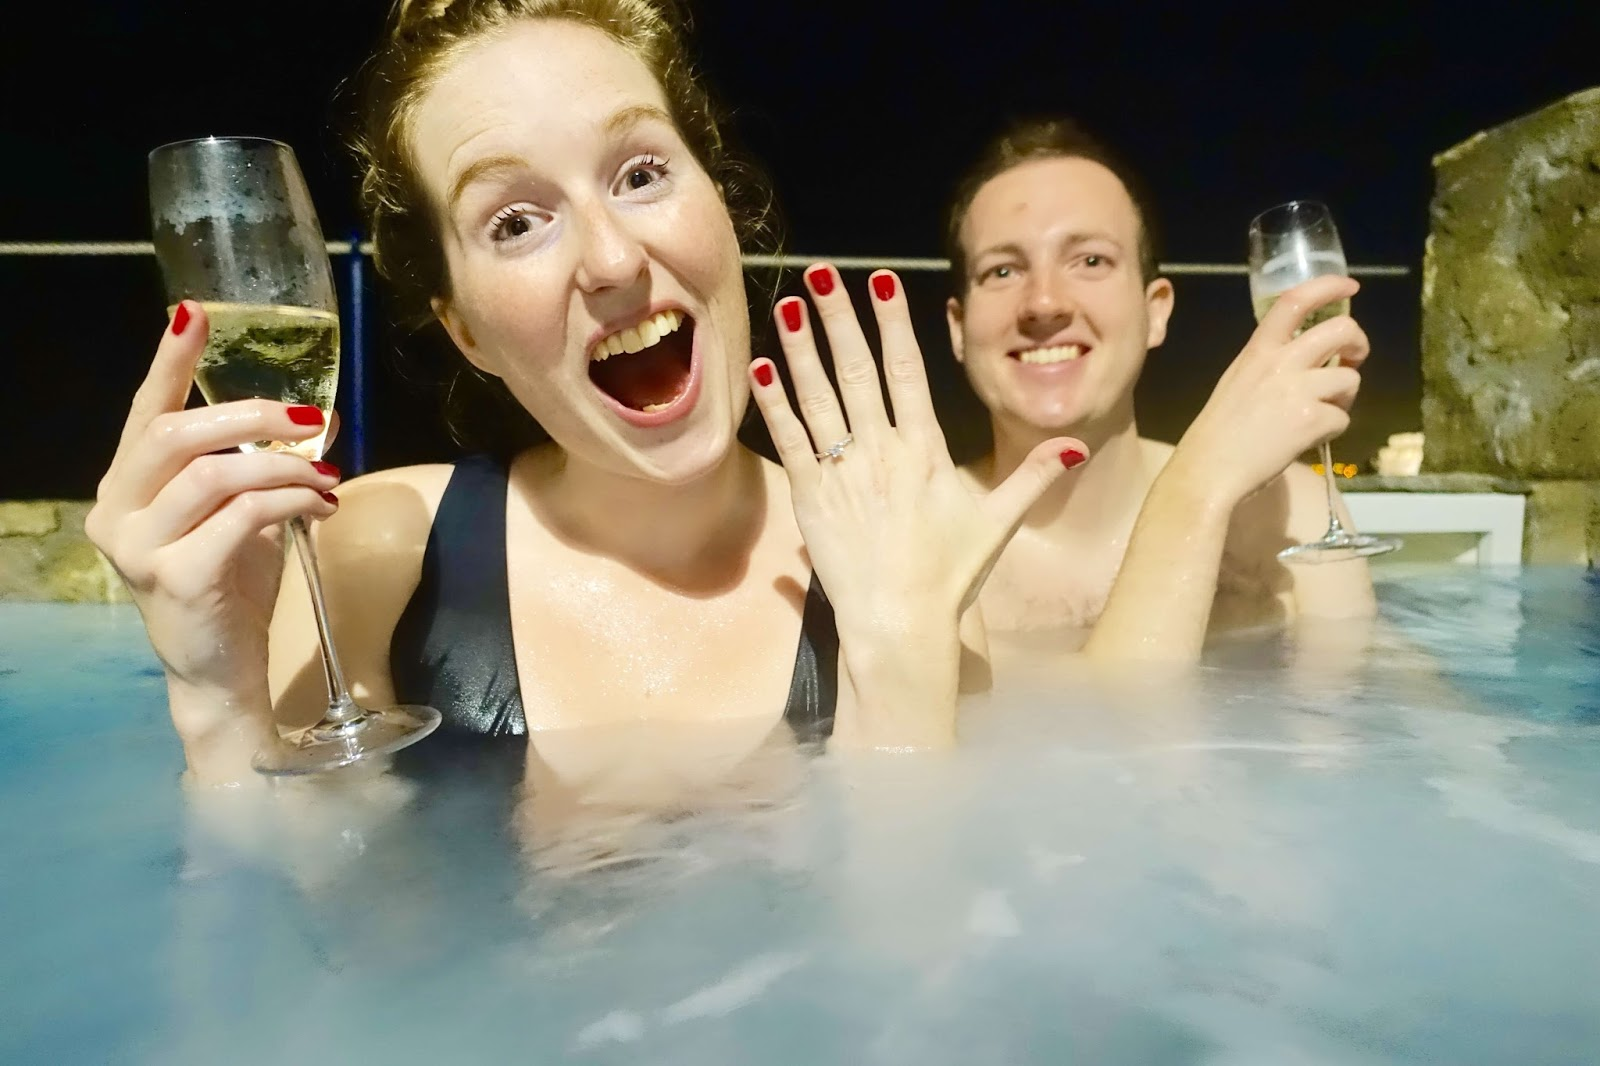 drinking-prosecco-private-jacuzzi